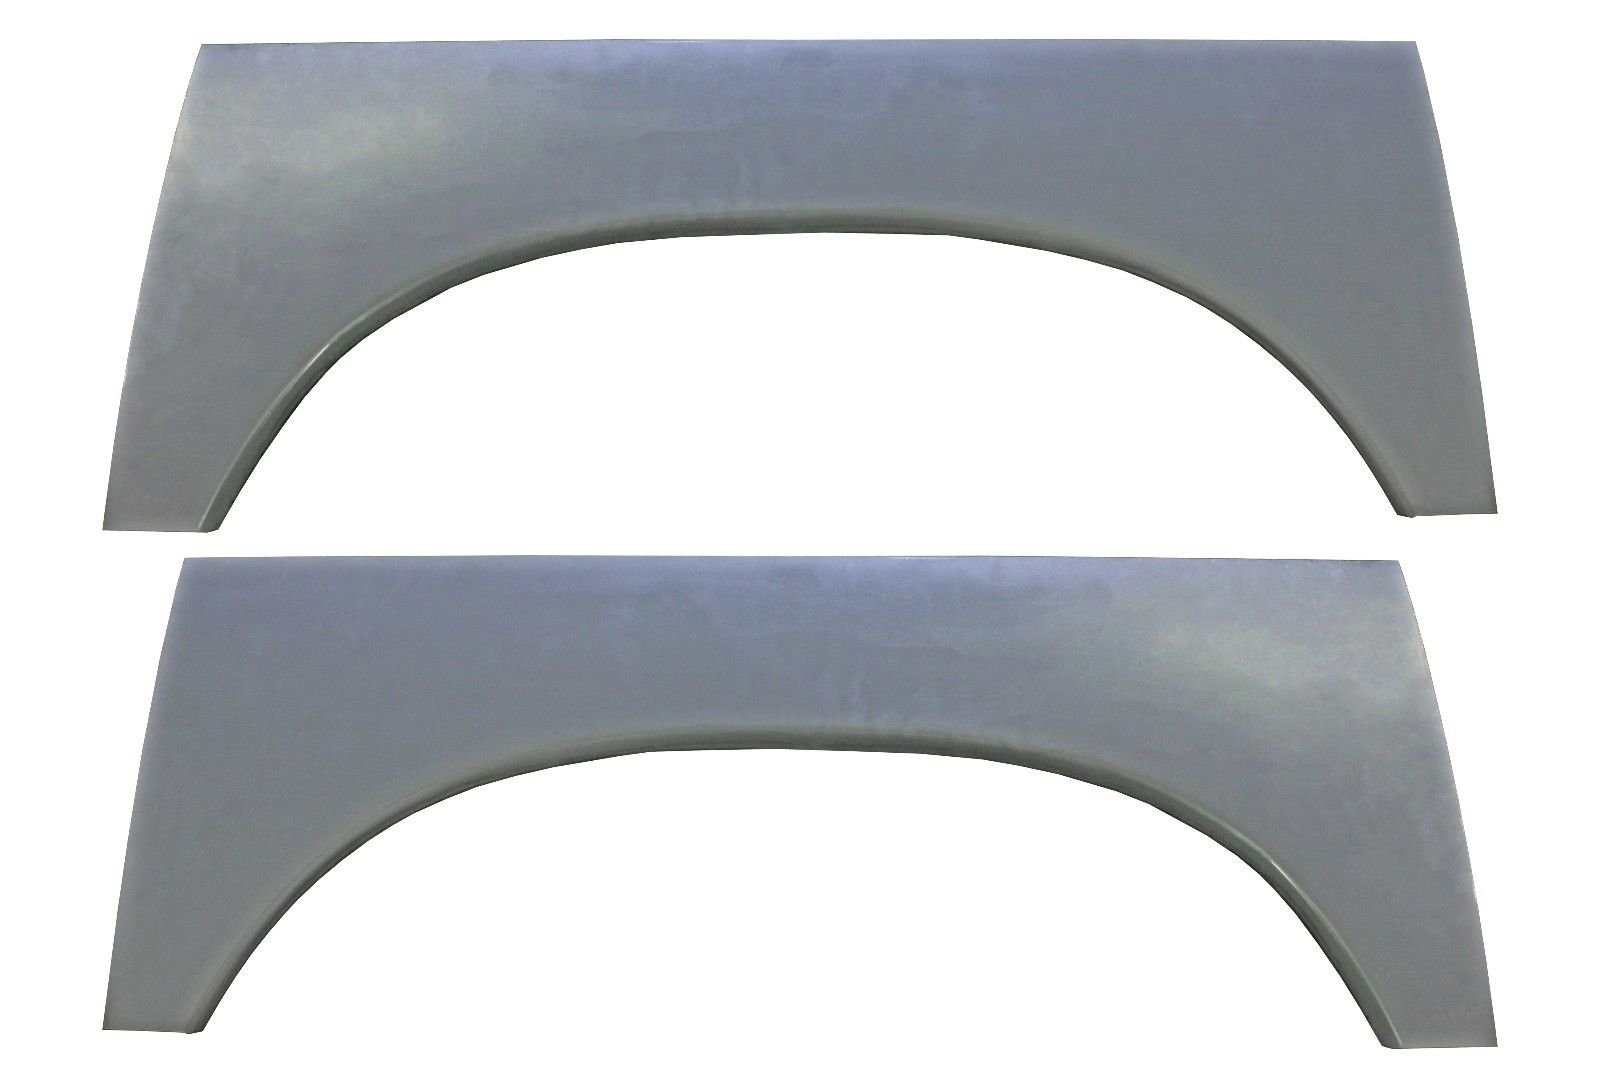 Motor City Sheet Metal - Works With Dodge Pickup Bedside Patch Panel Wheel Arch Upper 2002-2009 Dodge Ram NEW PAIR!!